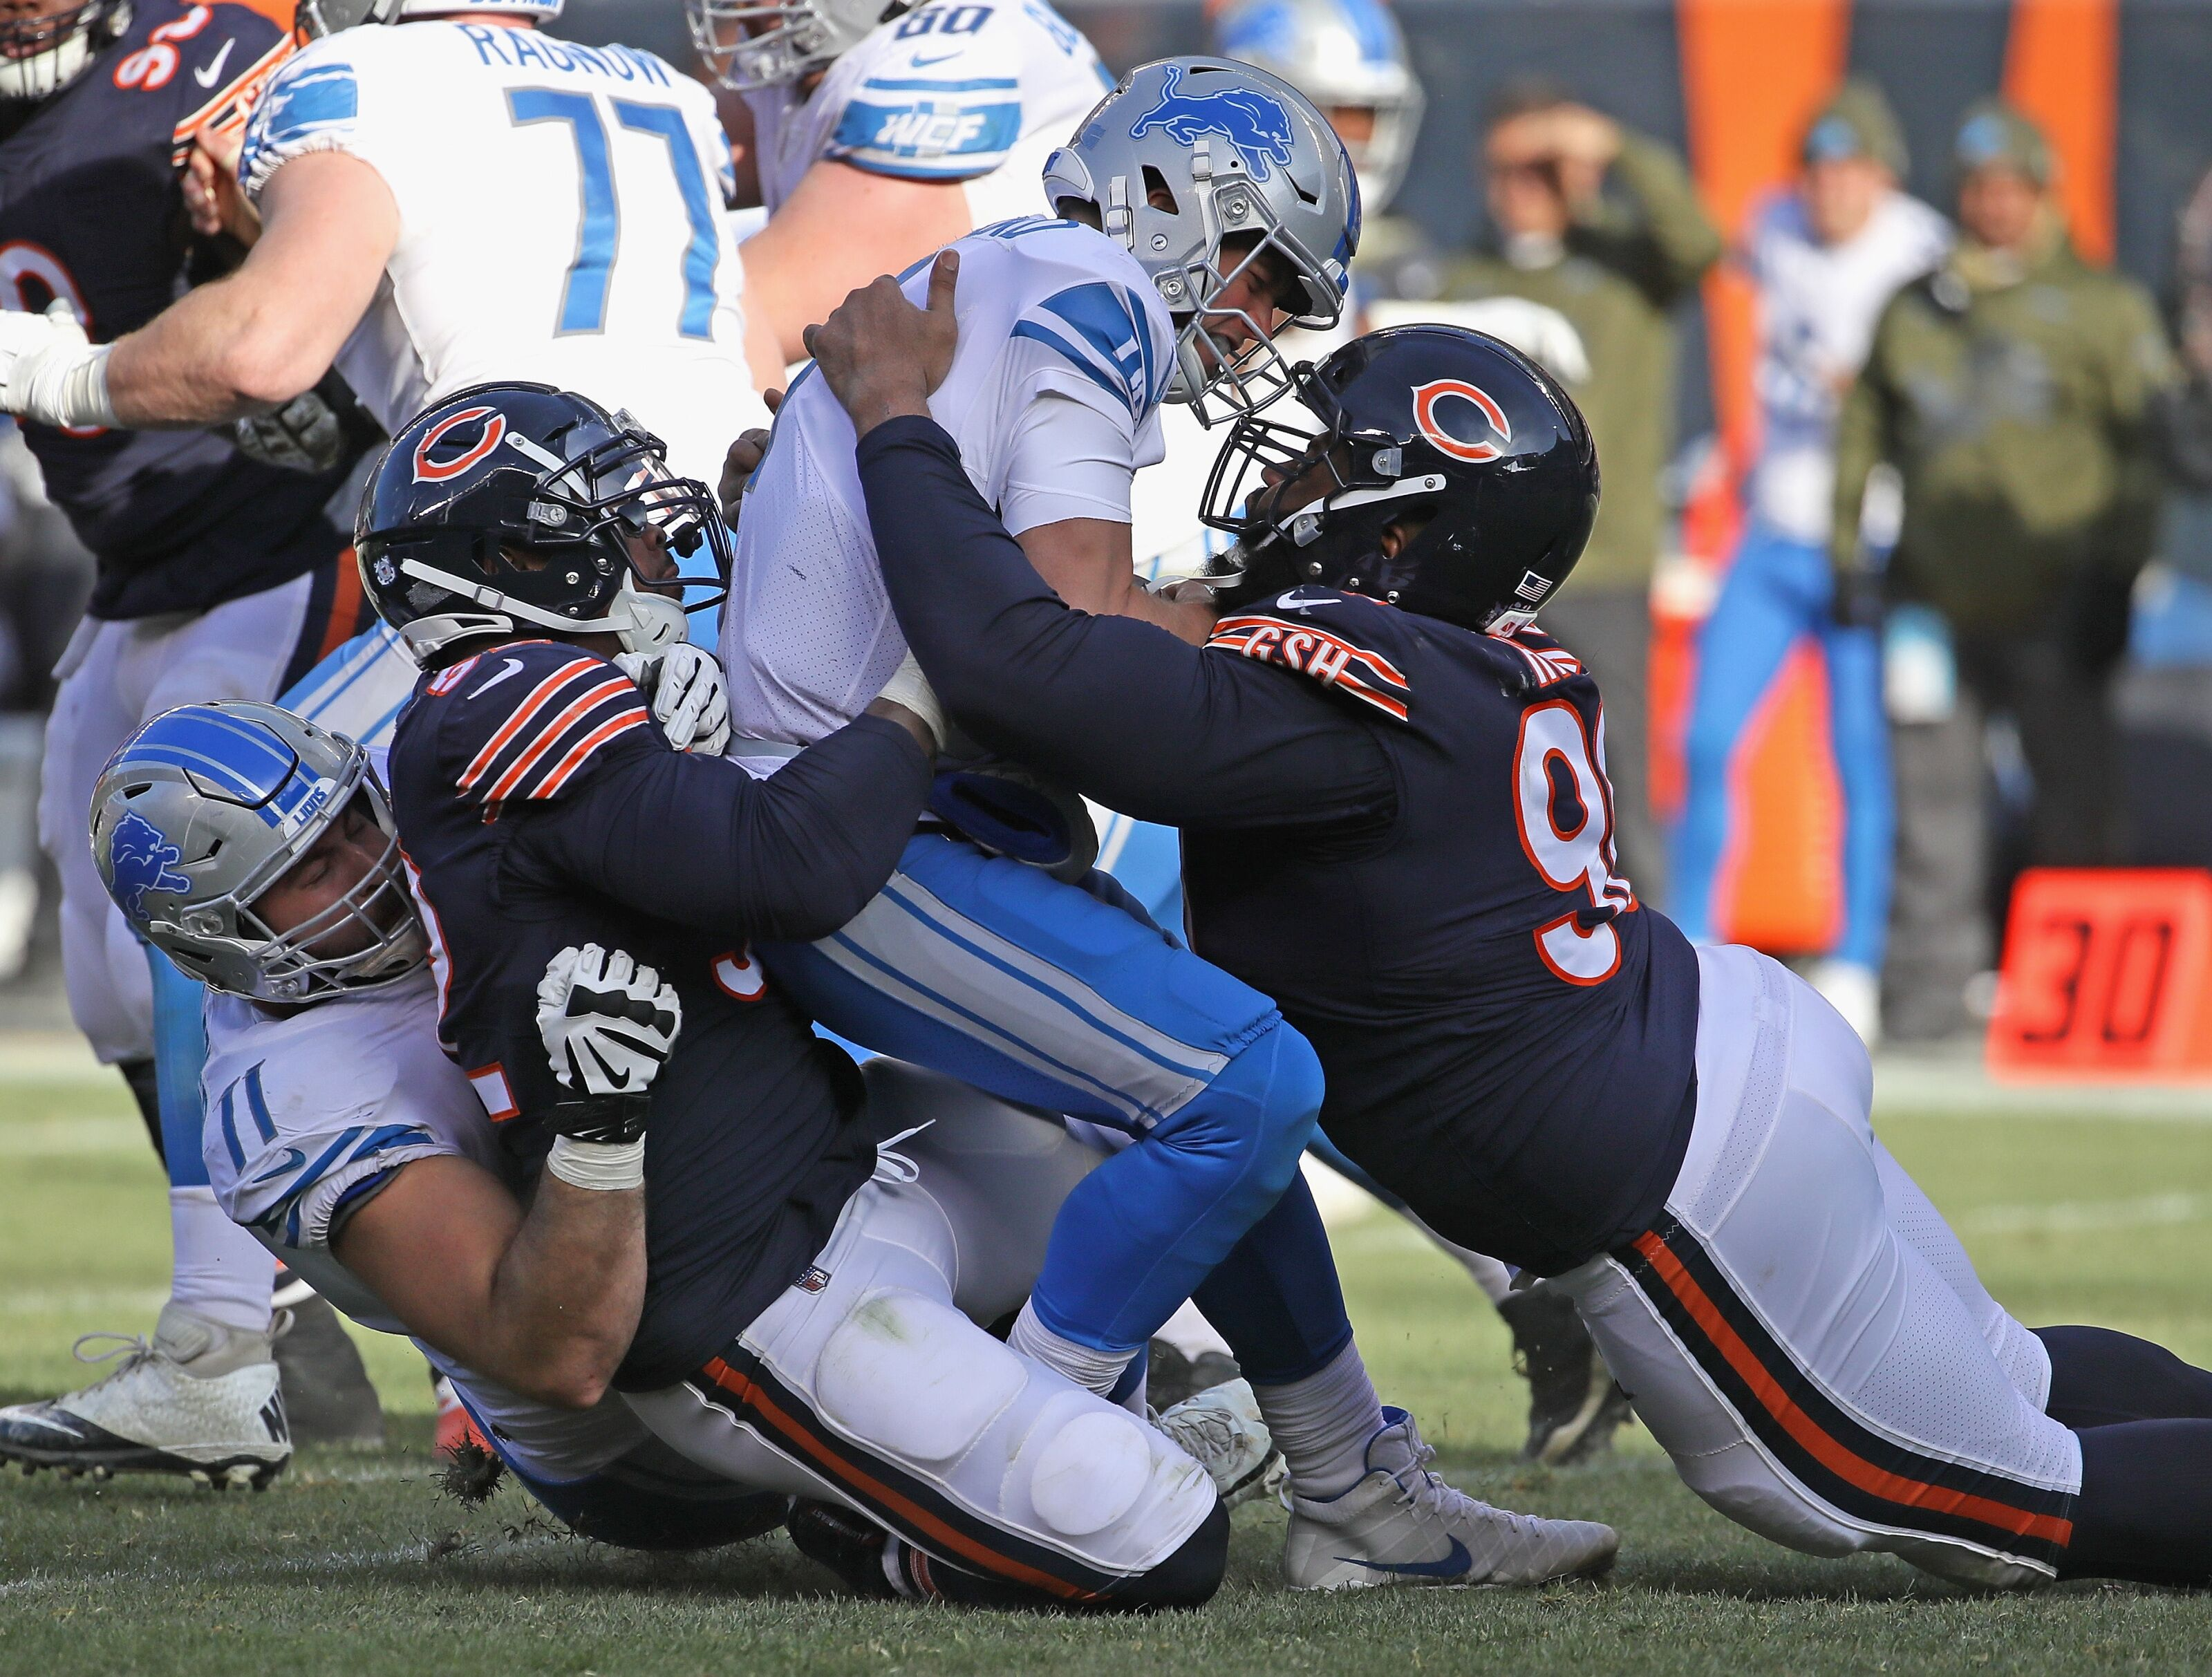 f422f676 Chicago Bears: NFL.com missed the mark in ranking of defensive triplets